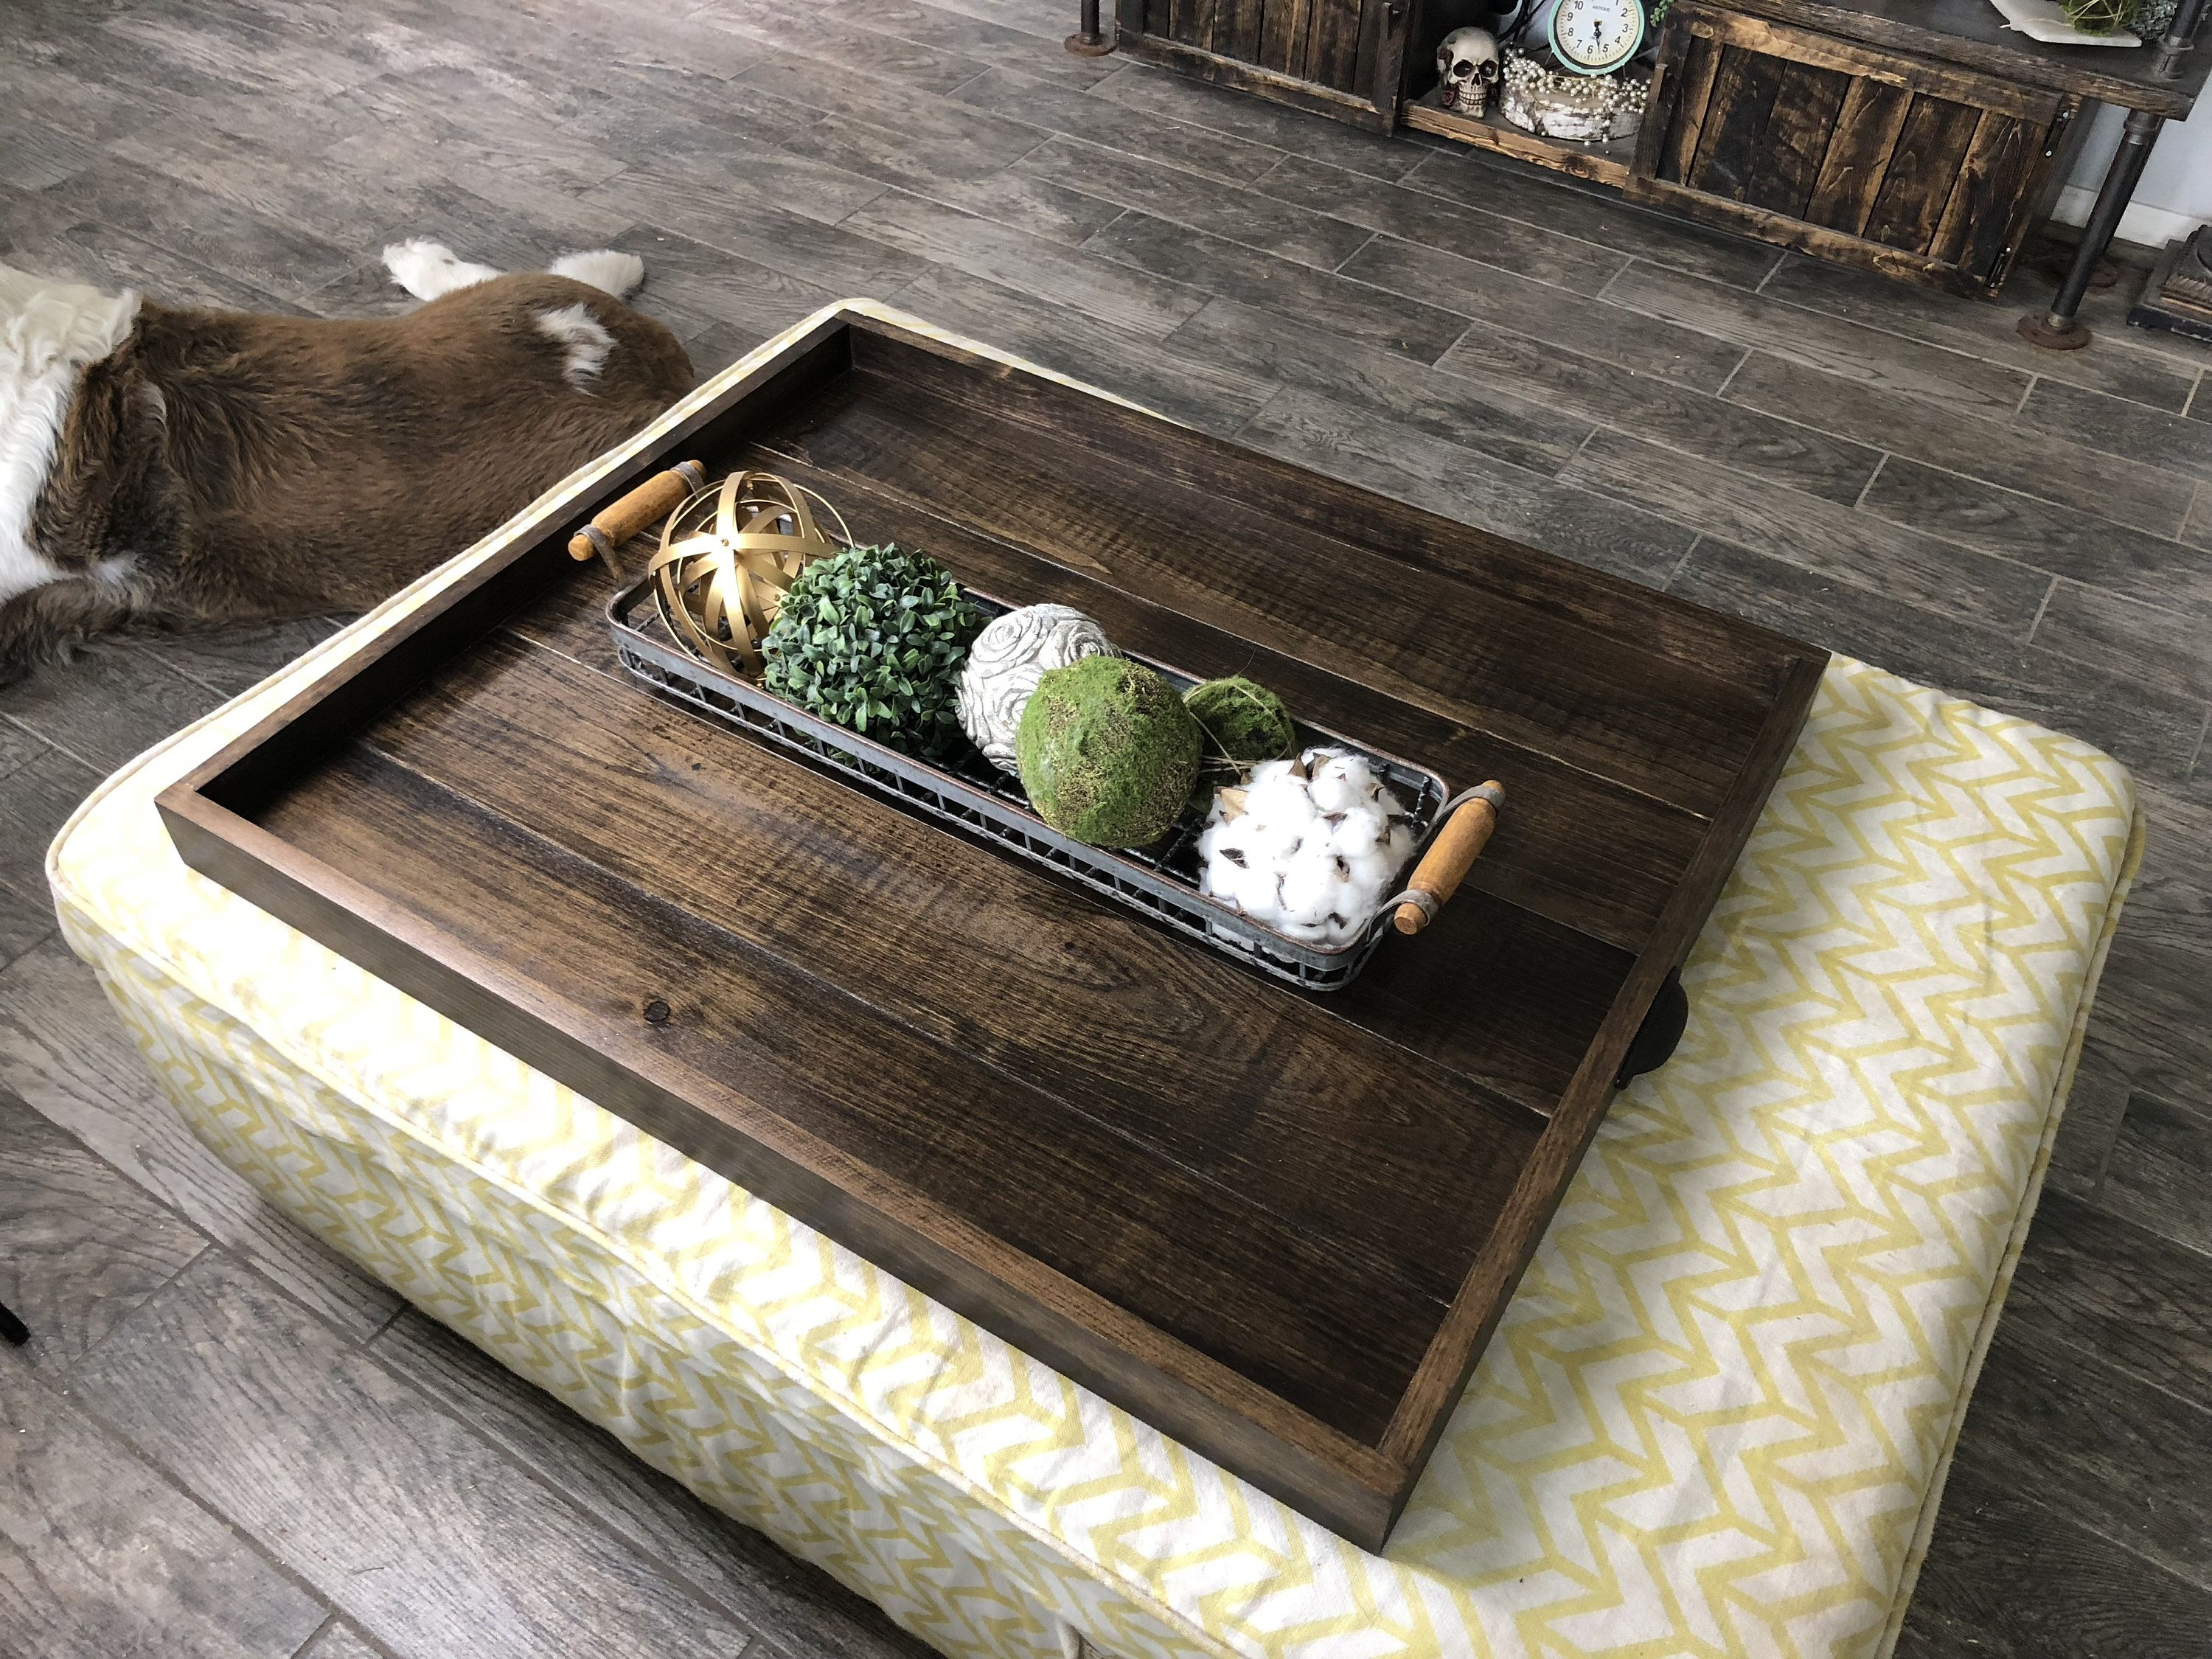 Ottoman Tray Oversized Handcrafted Wooden Ottoman Trays Etsy Ottoman Tray Diy Home Furniture Table Serving Tray